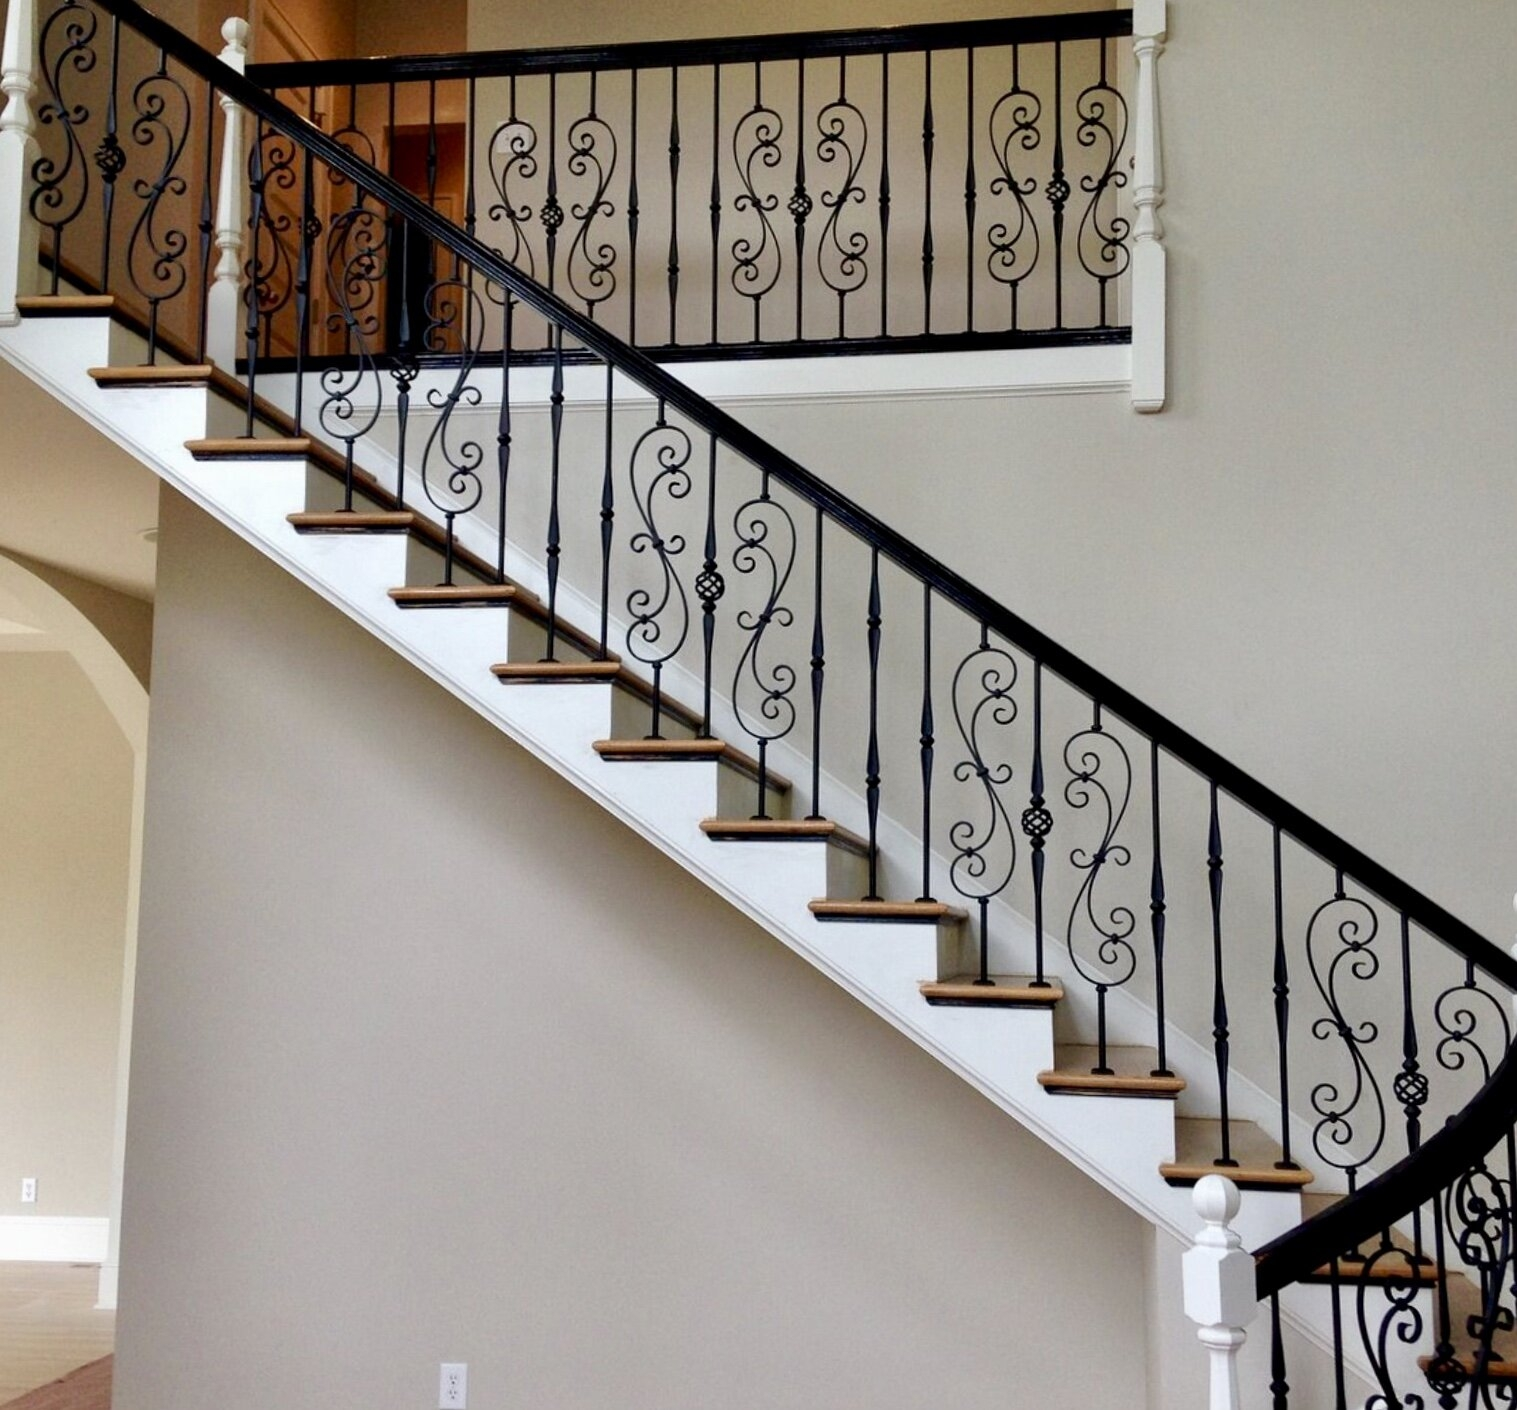 Wrought Iron Balusters Charlotte Nc Stair Railings   Wrought Iron Stair Railings Interior Cost   Stair Parts   Iron Staircase Railings   Rod Iron Balusters   Wood   Stair Spindles